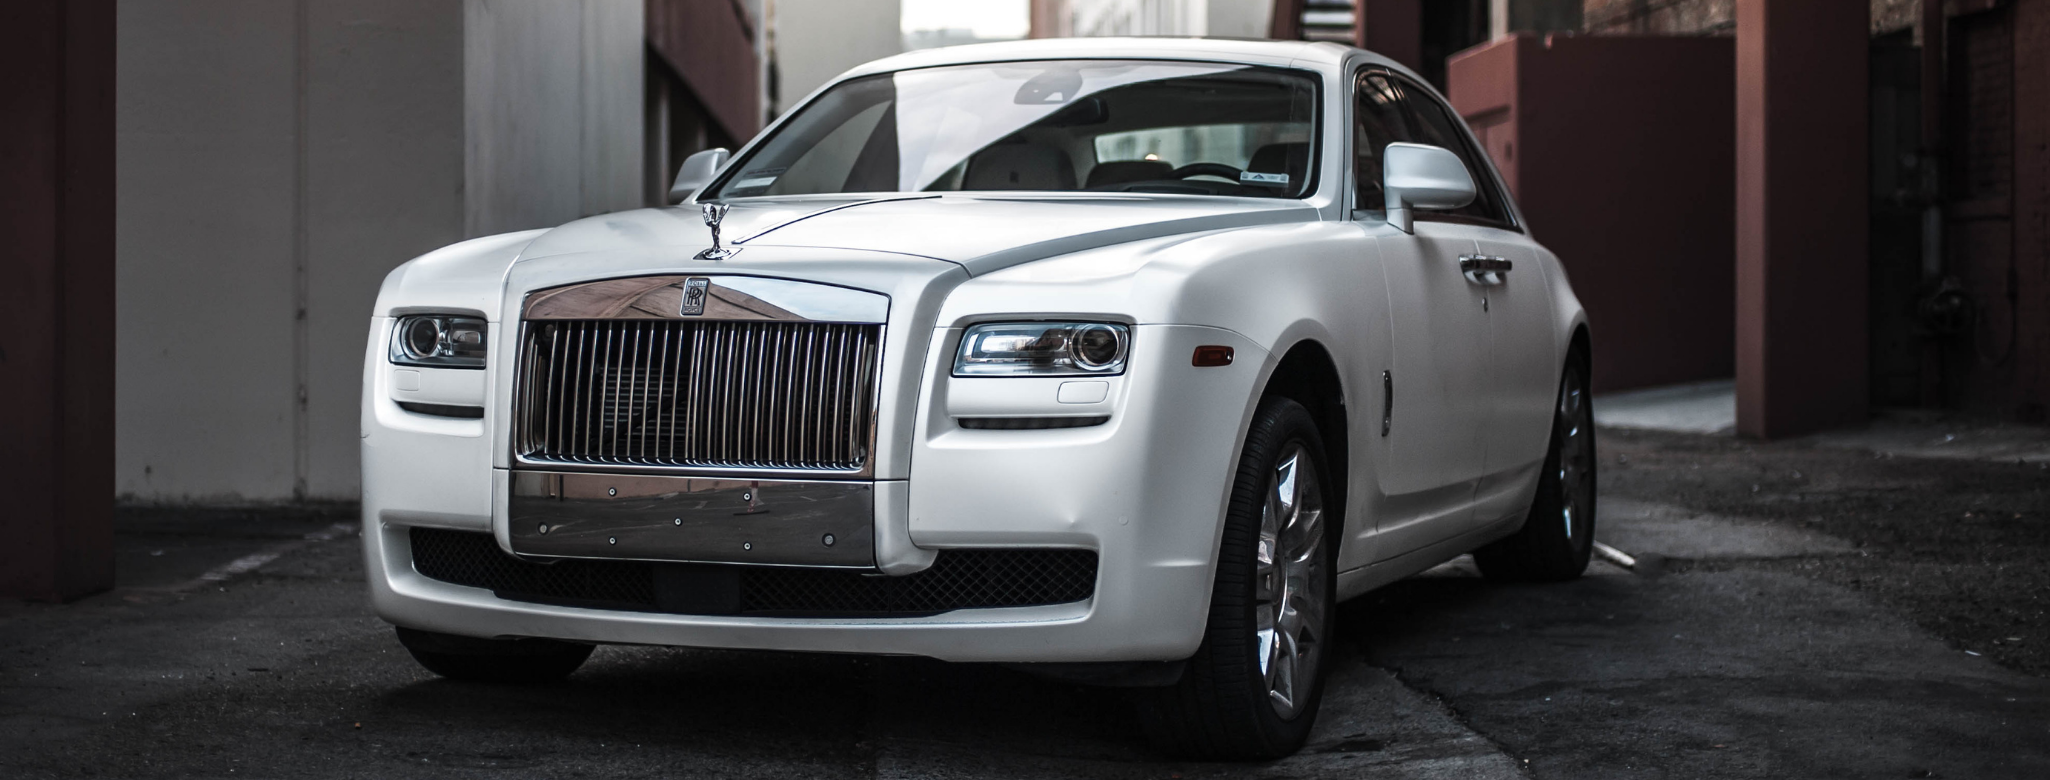 Rent a Rolls-Royce banner 2 for rr article